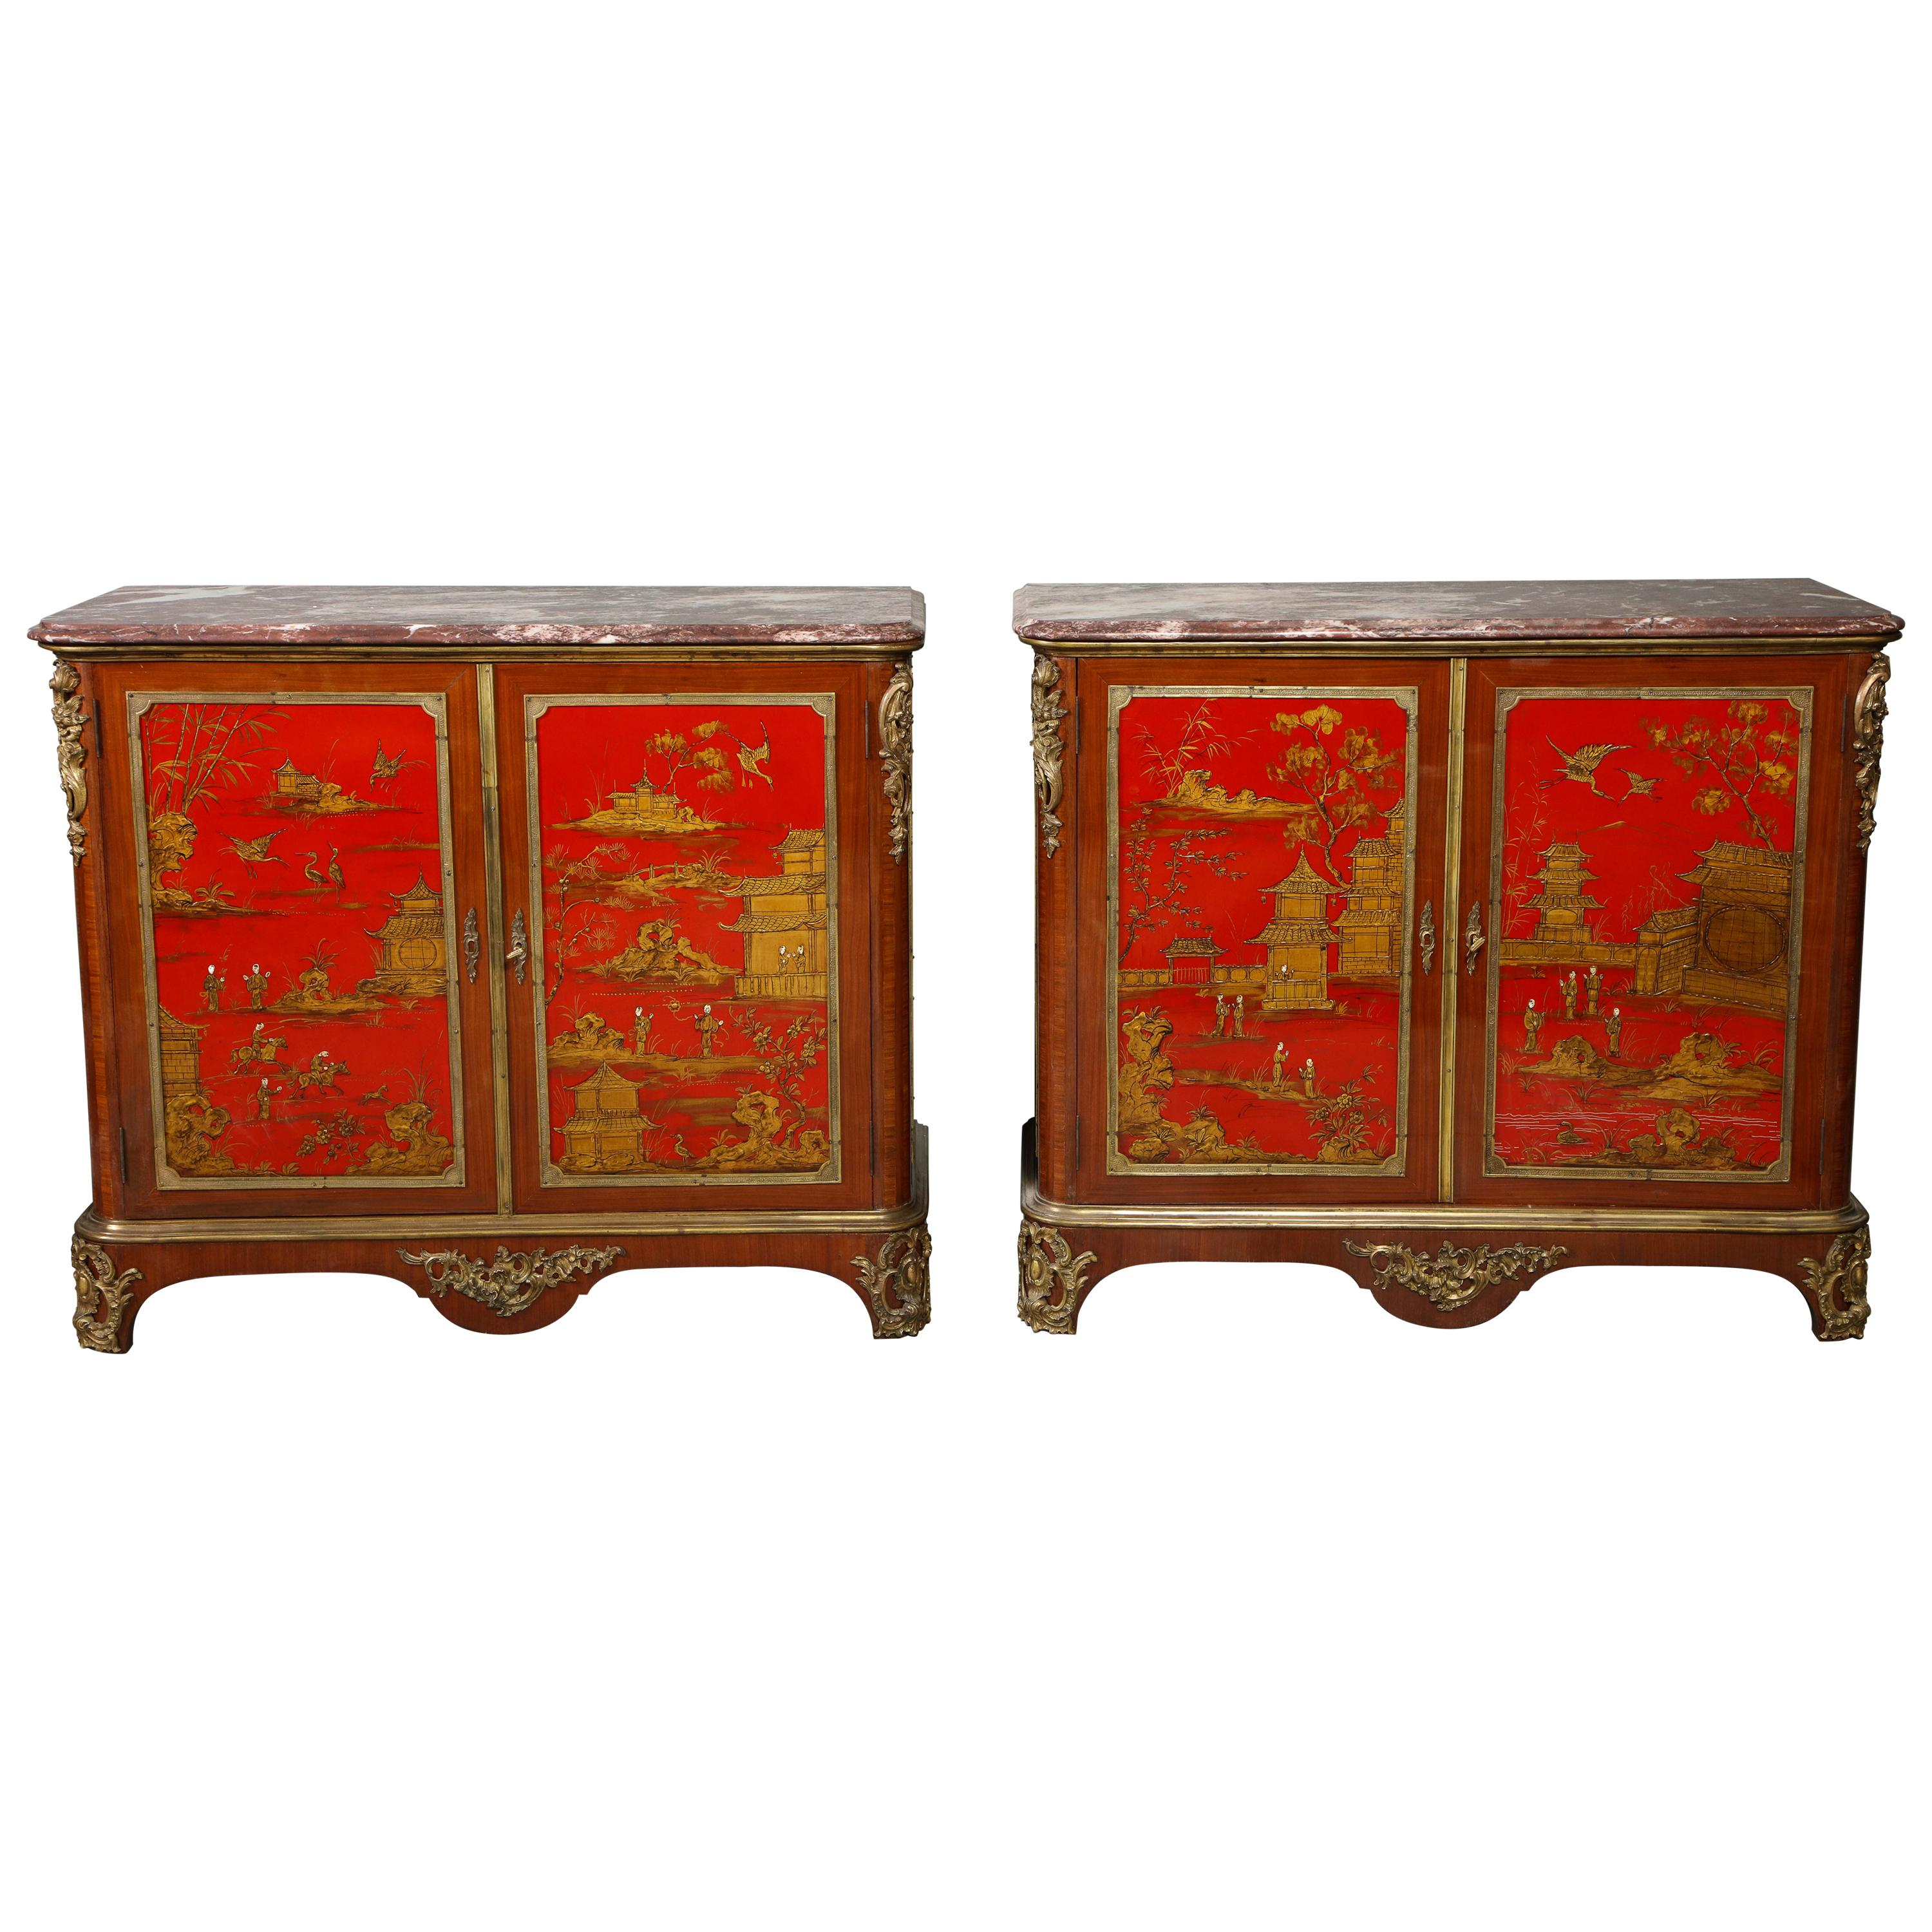 Pair of French 1940s Red Chinoiserie Cabinets with gilt bronze mounts